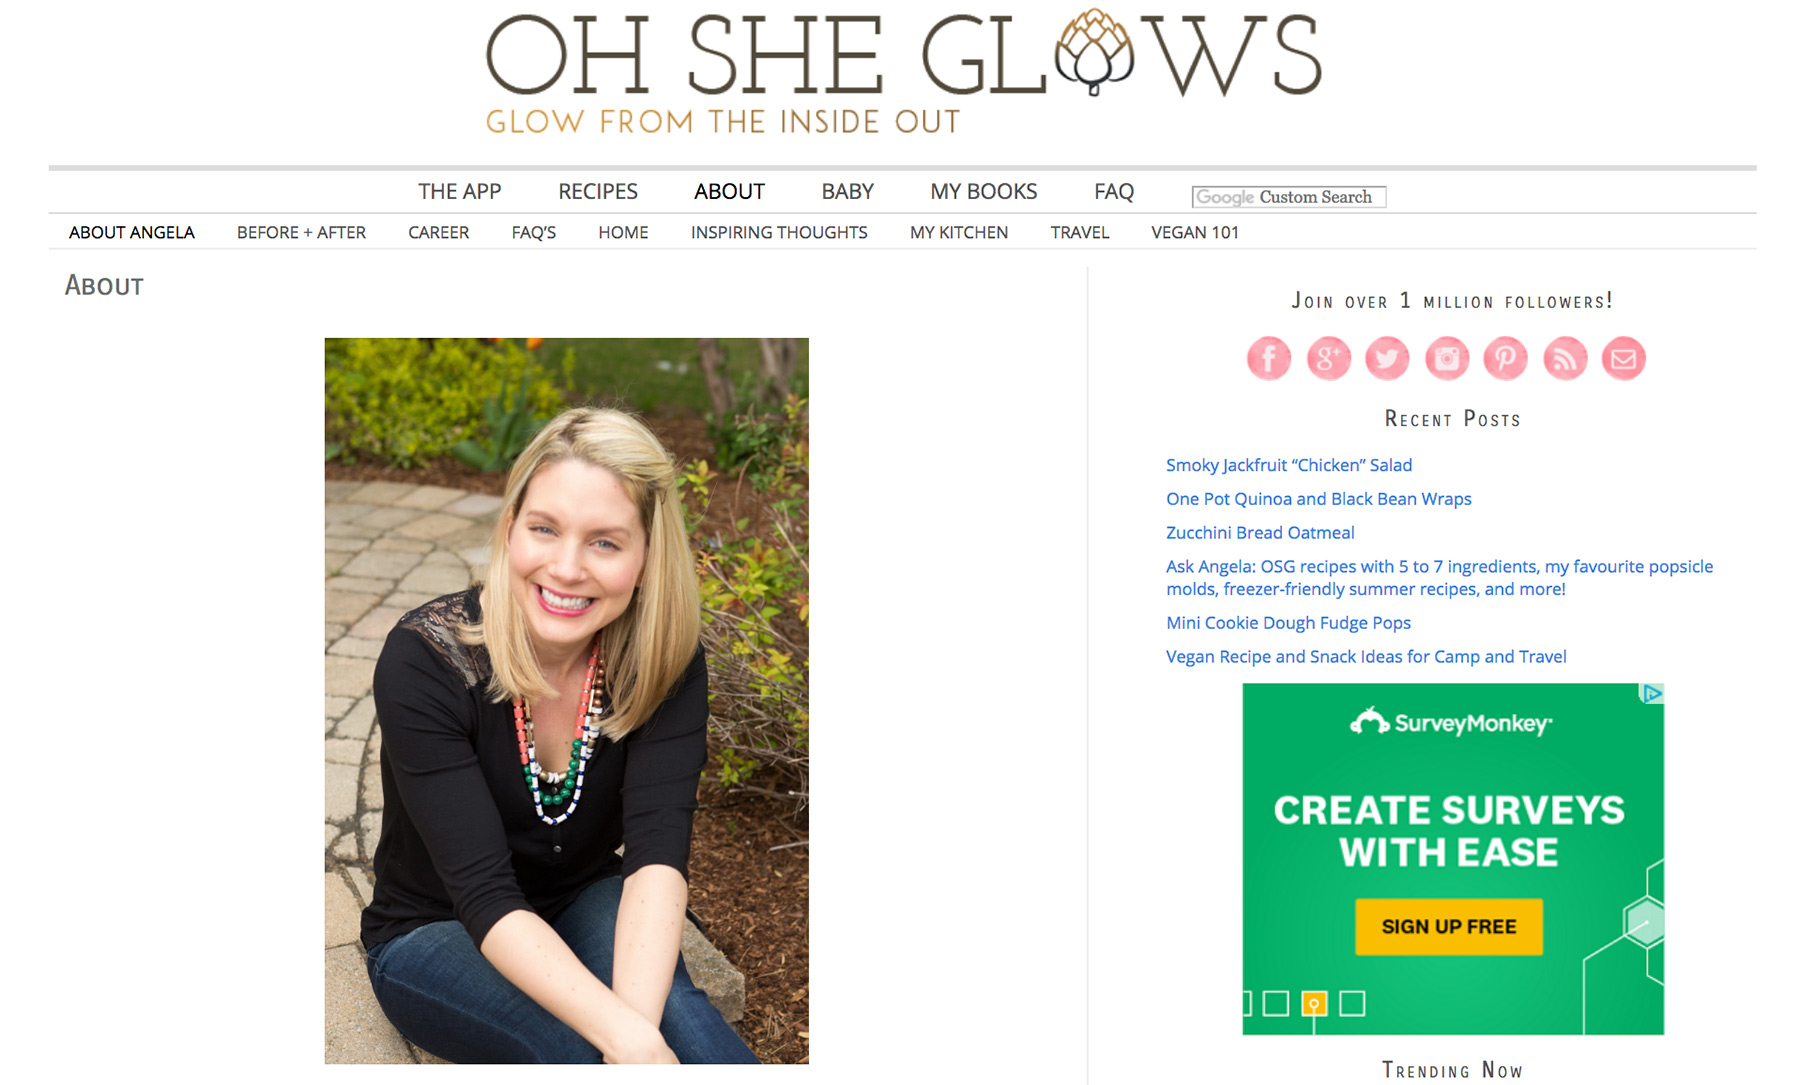 Blogs can build loyalty - Oh She Glows